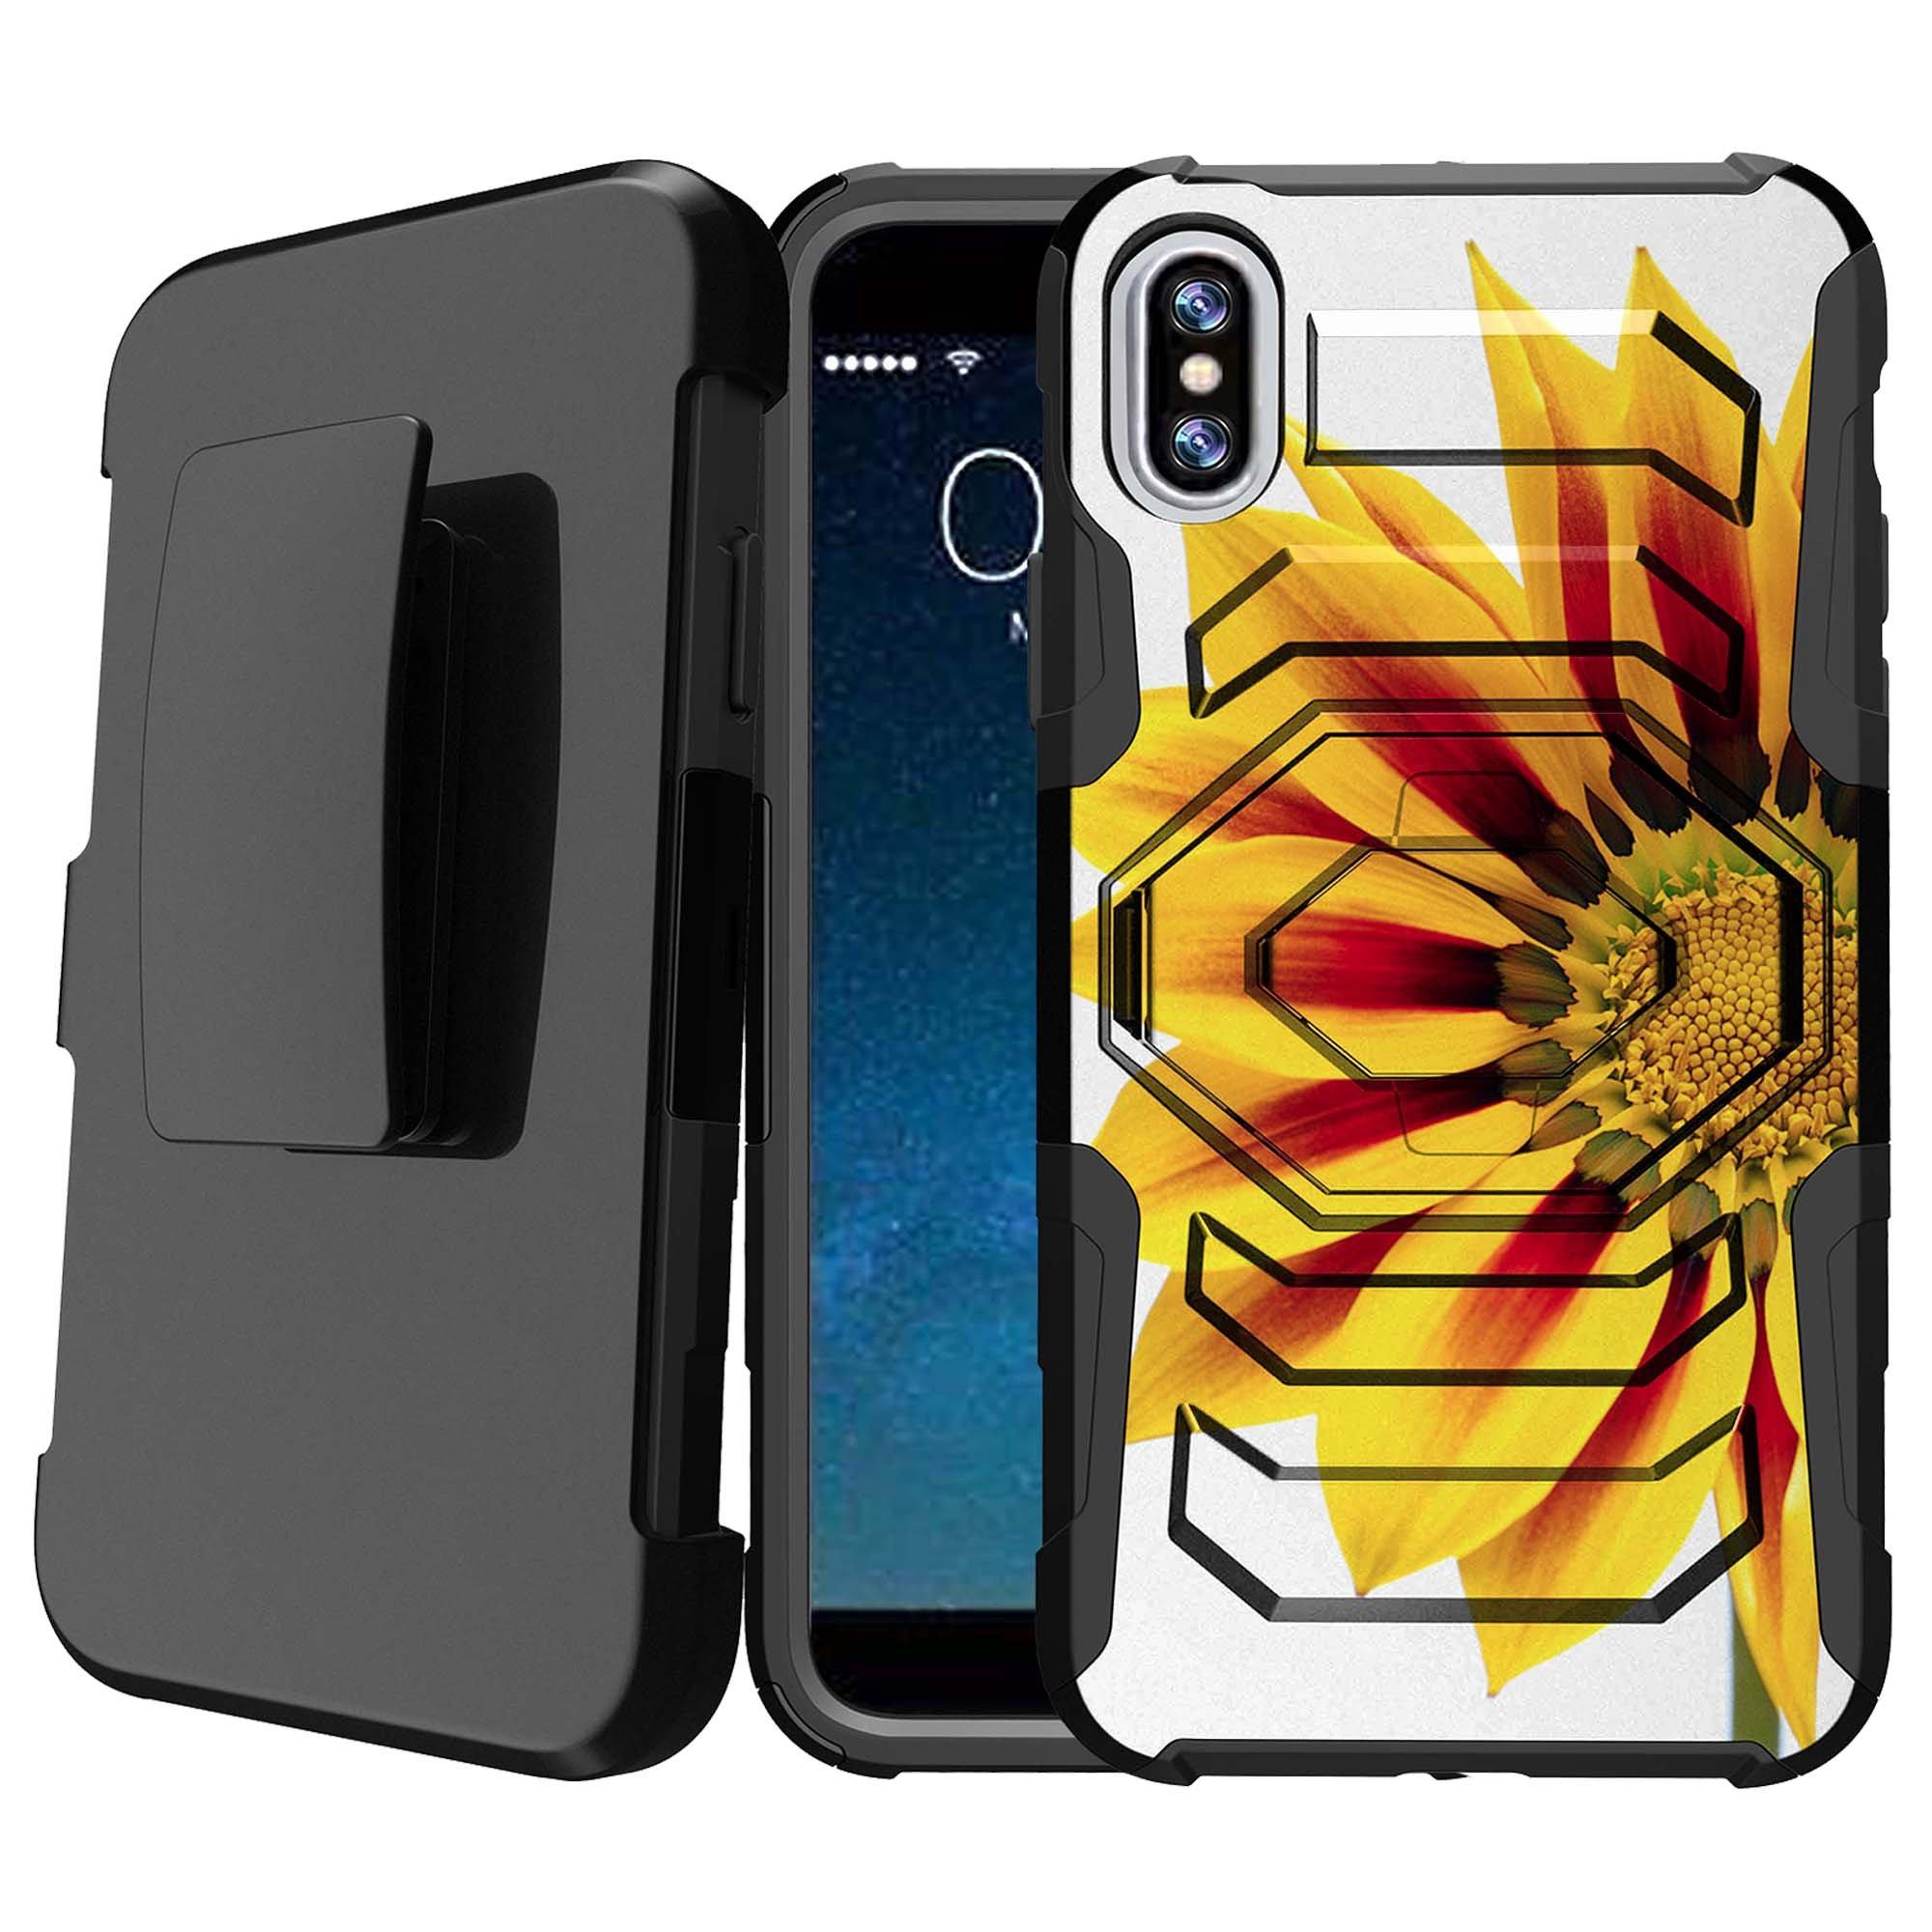 Apple iPhone X Scratch-Resistant Case [Armor Reloaded for iPhone X] Hard-Impact Rugged Swivel Impact Holster Case for iPhone X w/ Locking Kickstand Feature - Yellow Sunflower